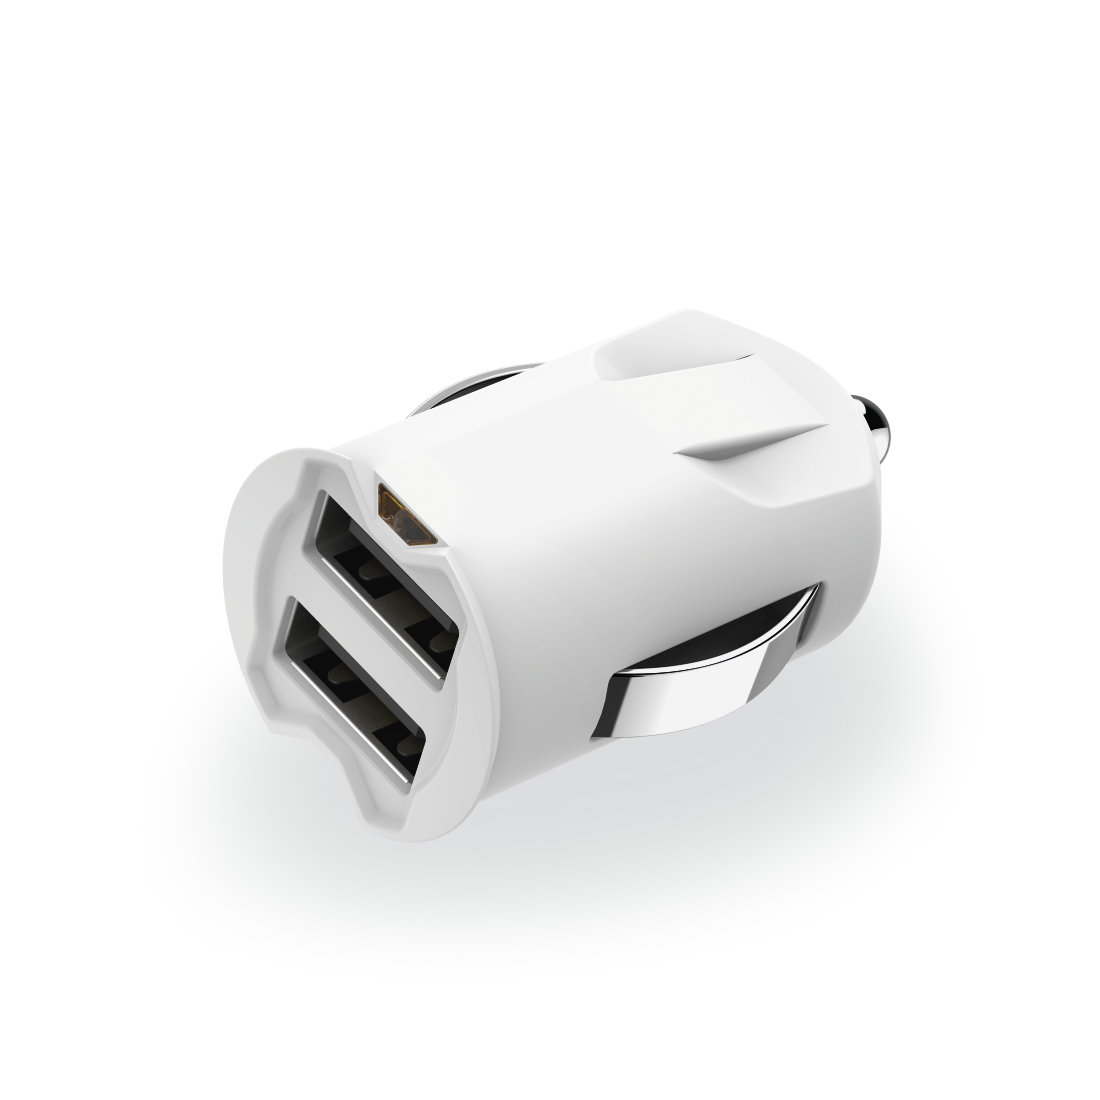 00178268 Hama Car Charger 2 Port Usb 21 A 36 Pcs In Display Large Ampamp Abx2 High Res Image